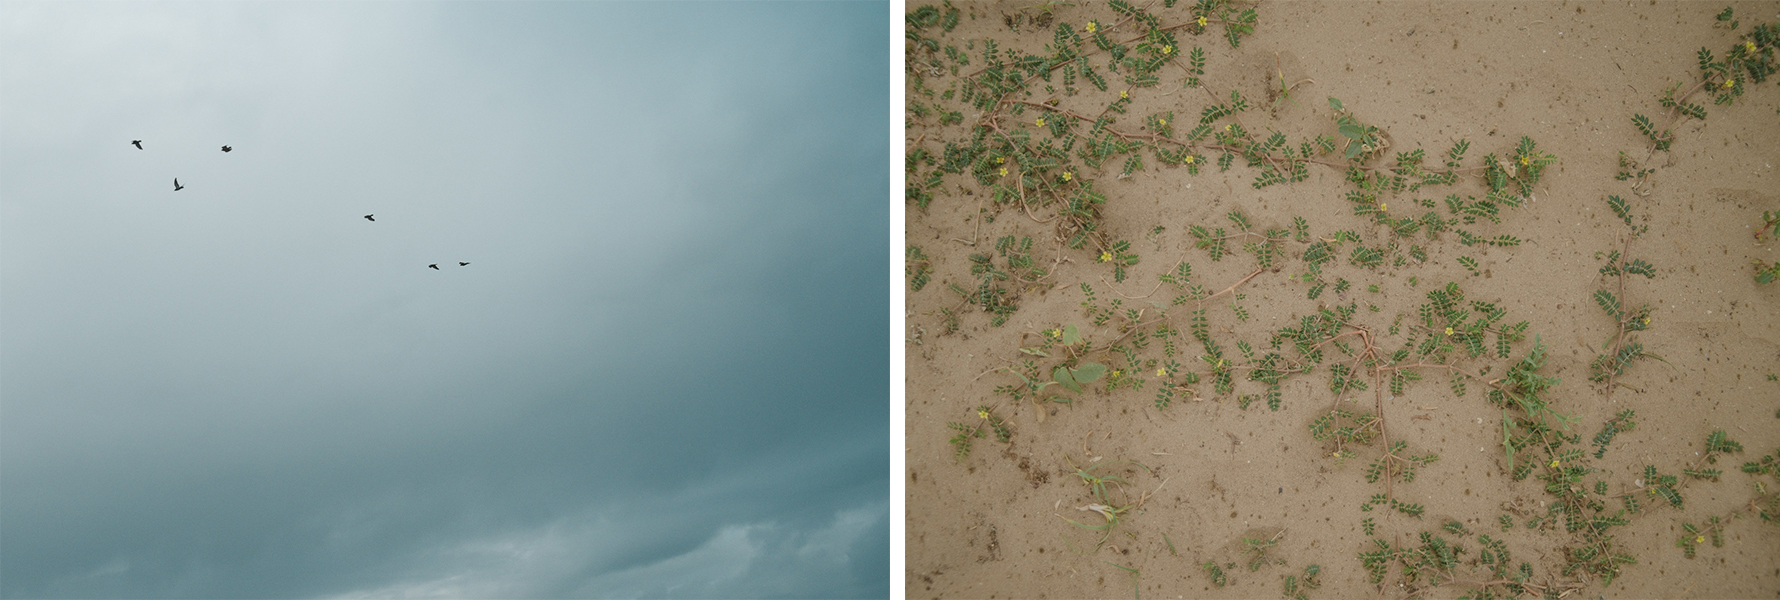 Dettagli di piante sulla sabbia e cielo grigio con uccelli che volano lontano - details of some greenery and small plants in the sand paired with grey sky and some birds flying high